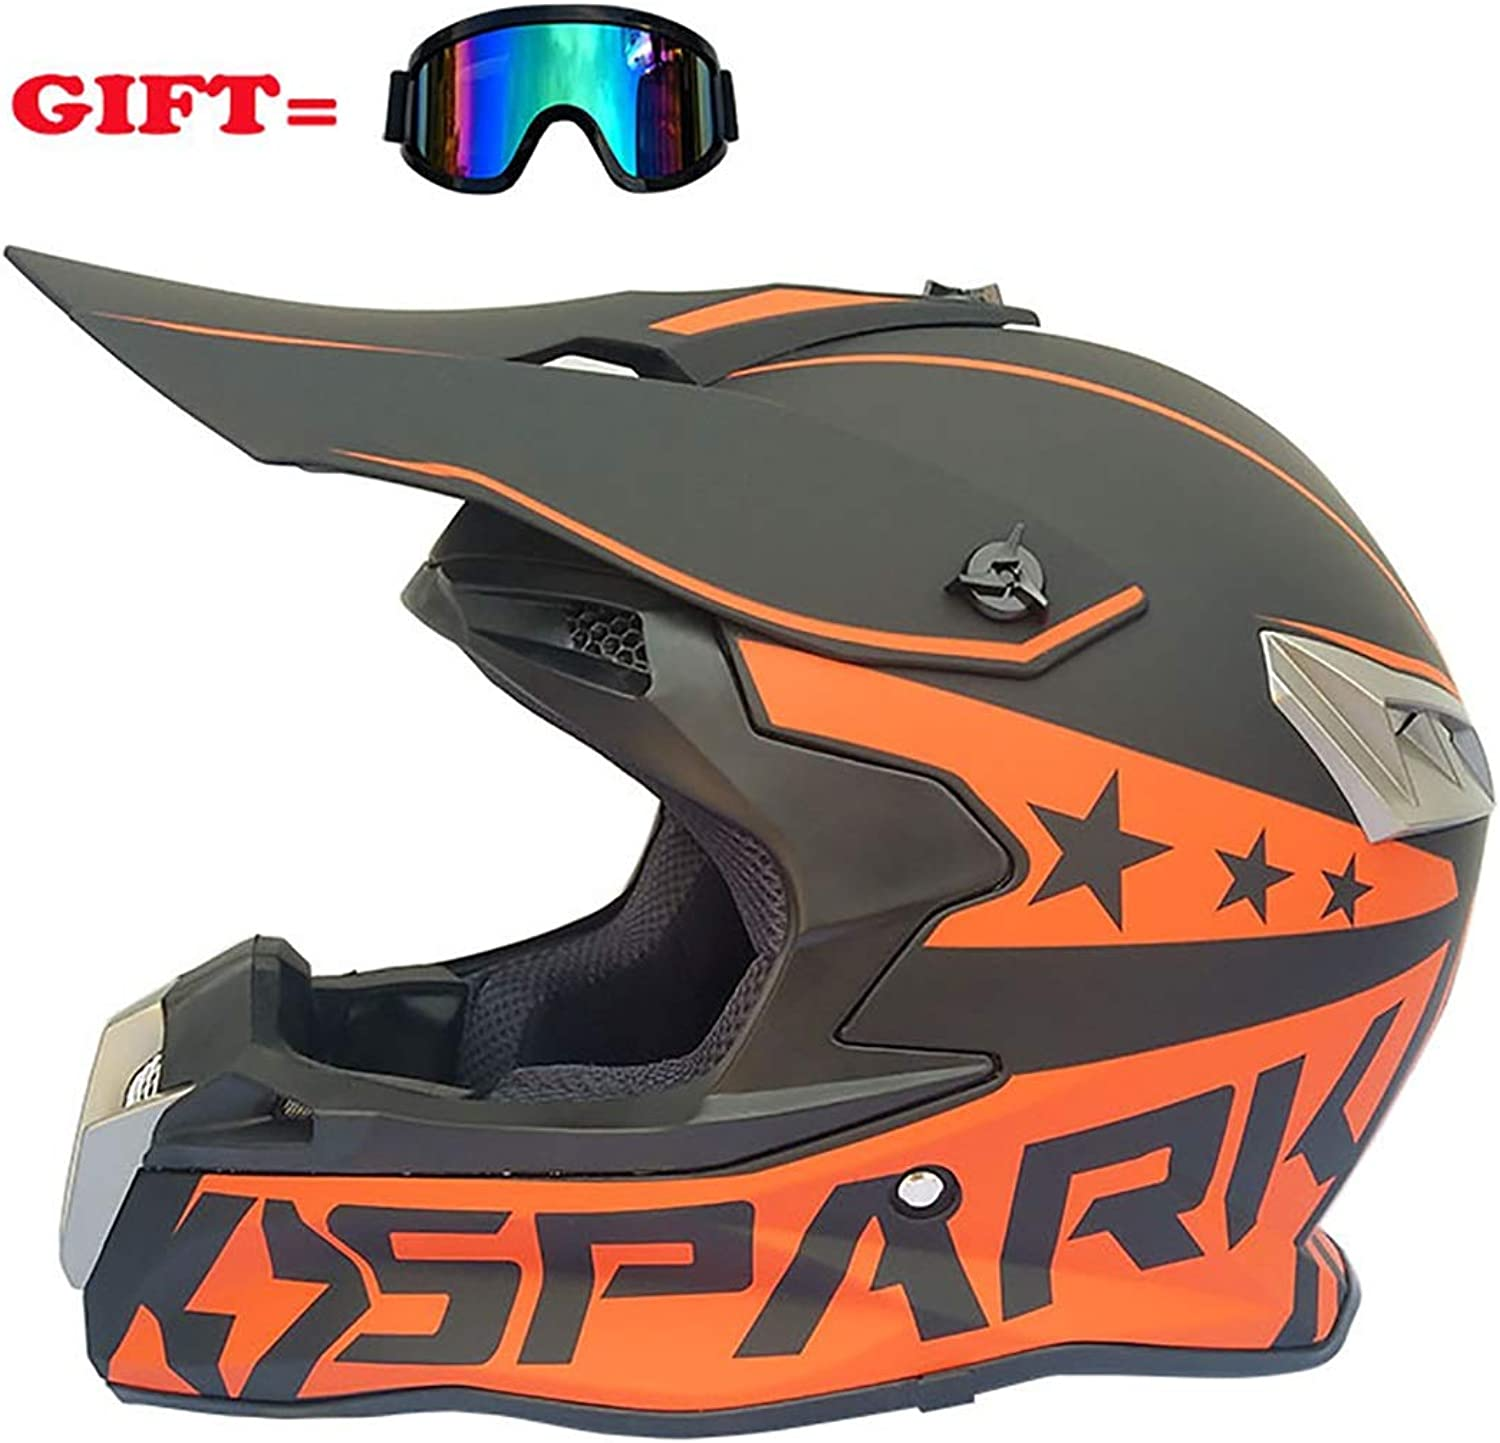 Four Seasons Motorcycle Helmet Frosted Moped Racing OffRoad Vehicle, ABS Material, Unisex Full face Helmet, Fashion, Free Goggles   (Size   orange3)